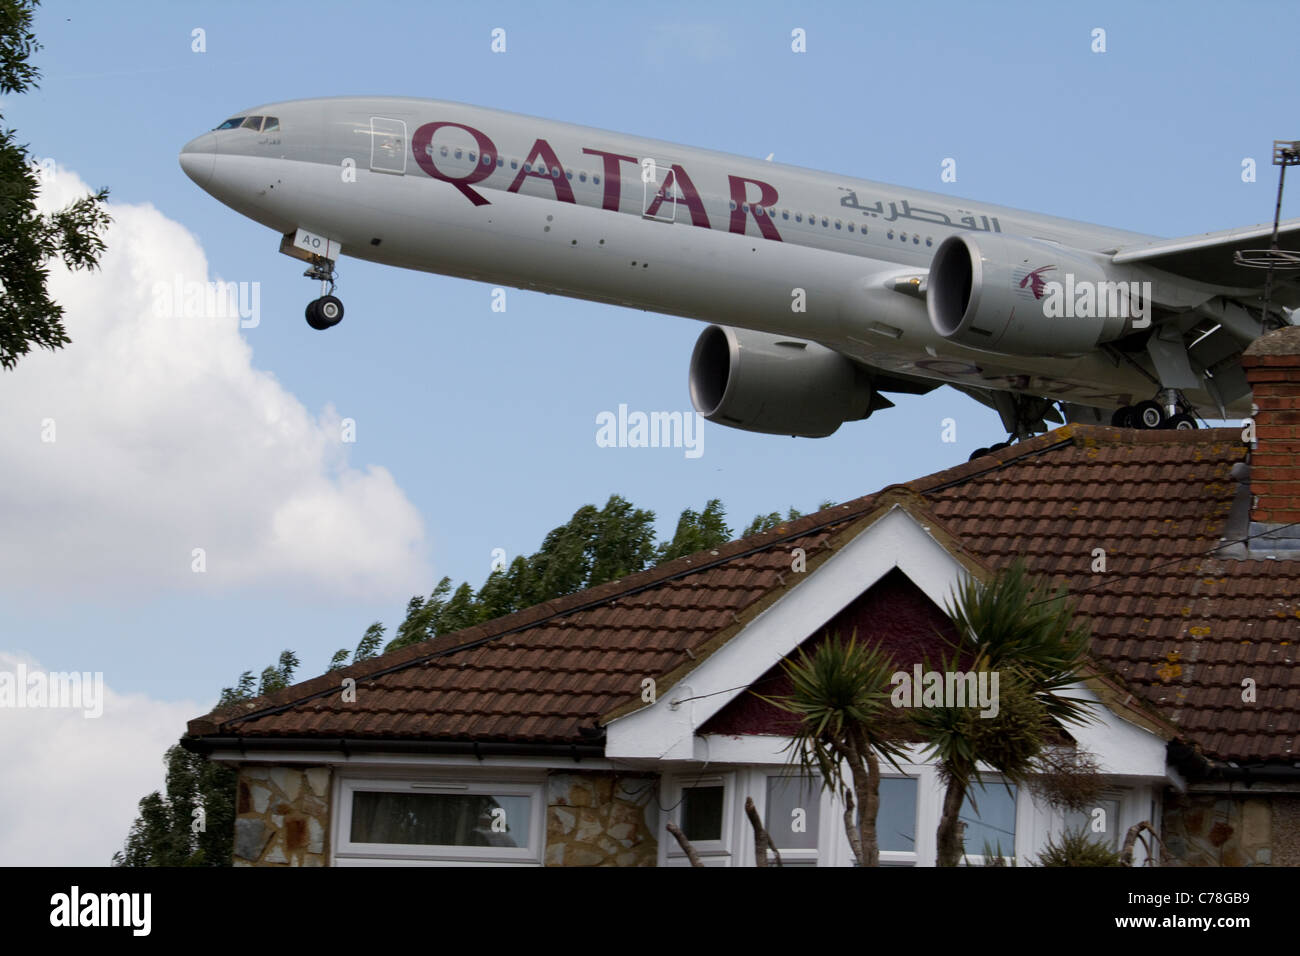 qatar airliner Low flying aircraft Heathrow airport approach - Stock Image